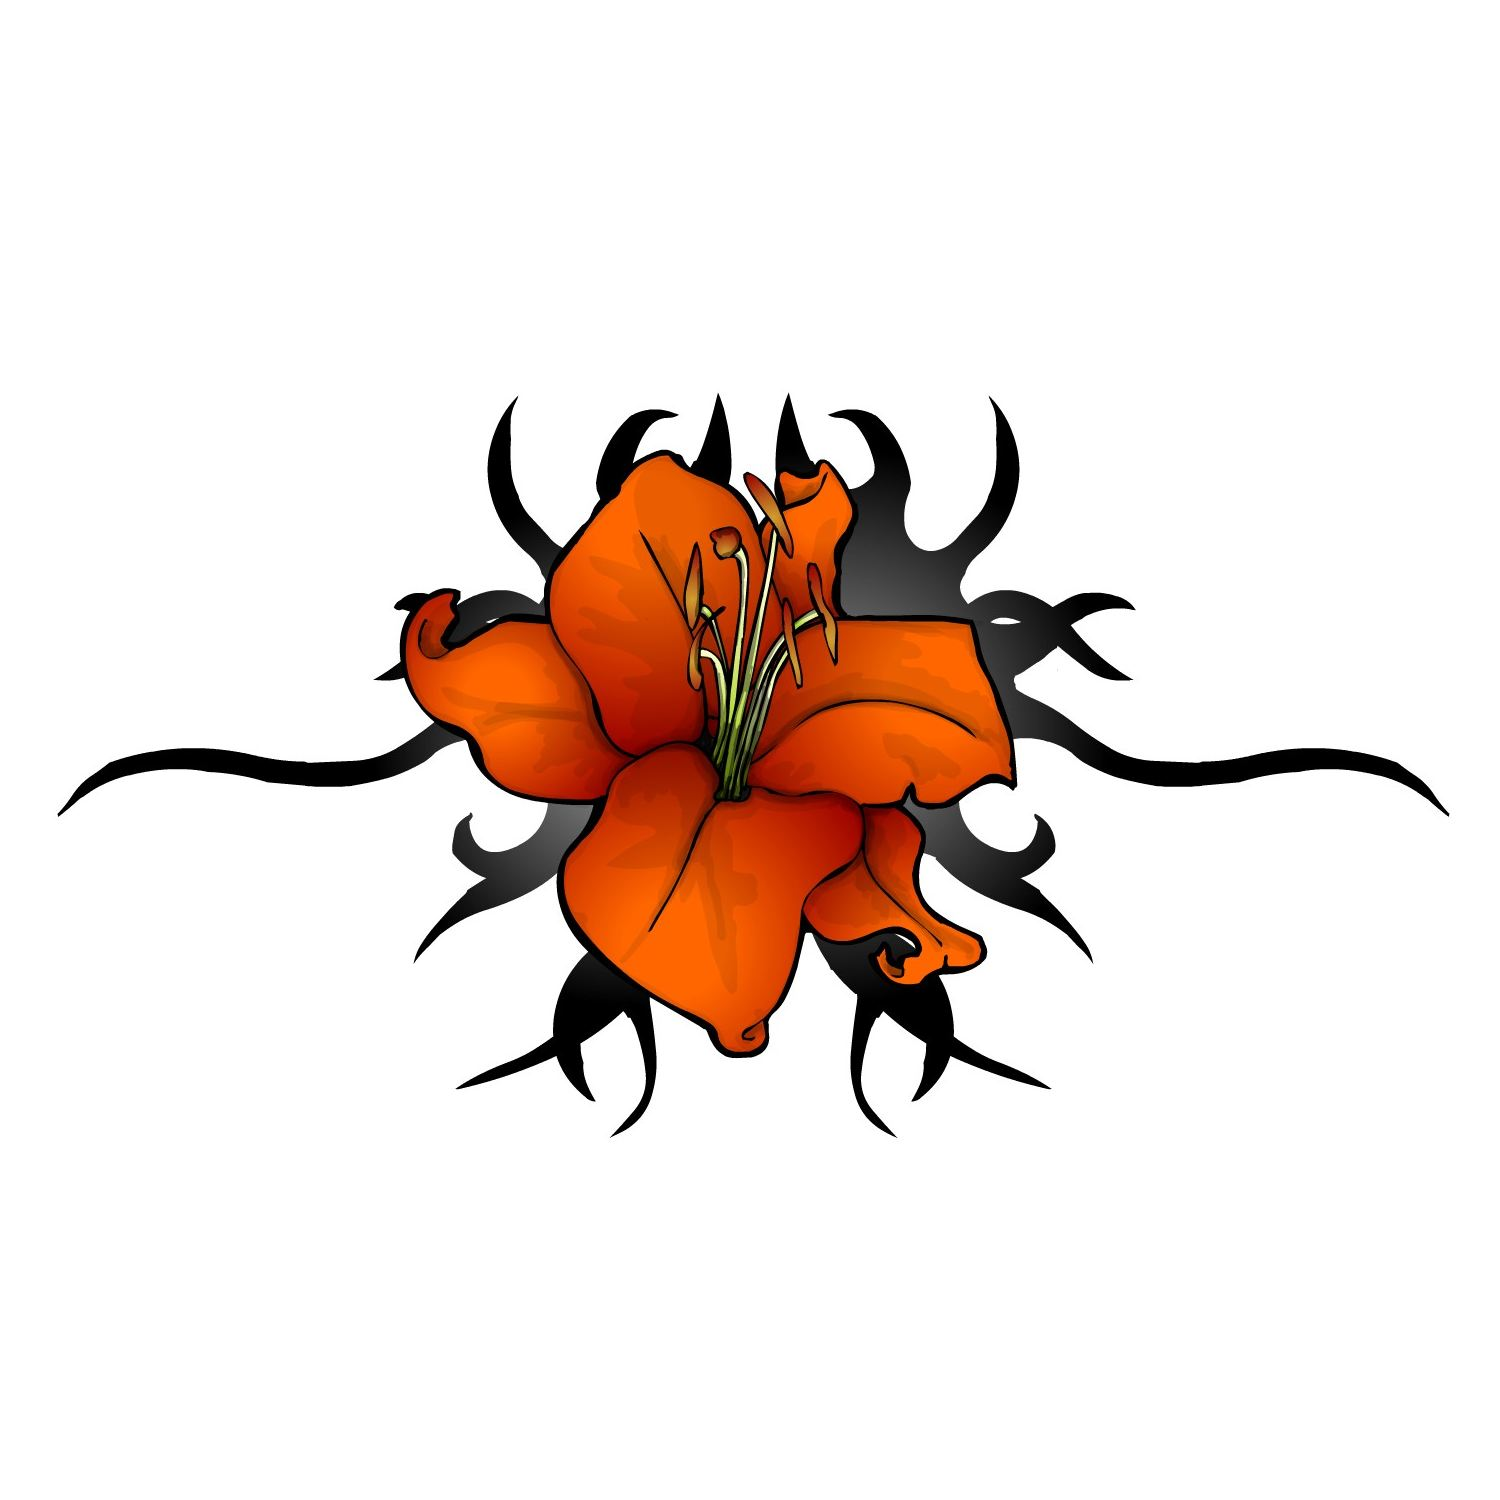 Tribal lily flowers tattoo design tribal lily flowers tattoo design photo 1 izmirmasajfo